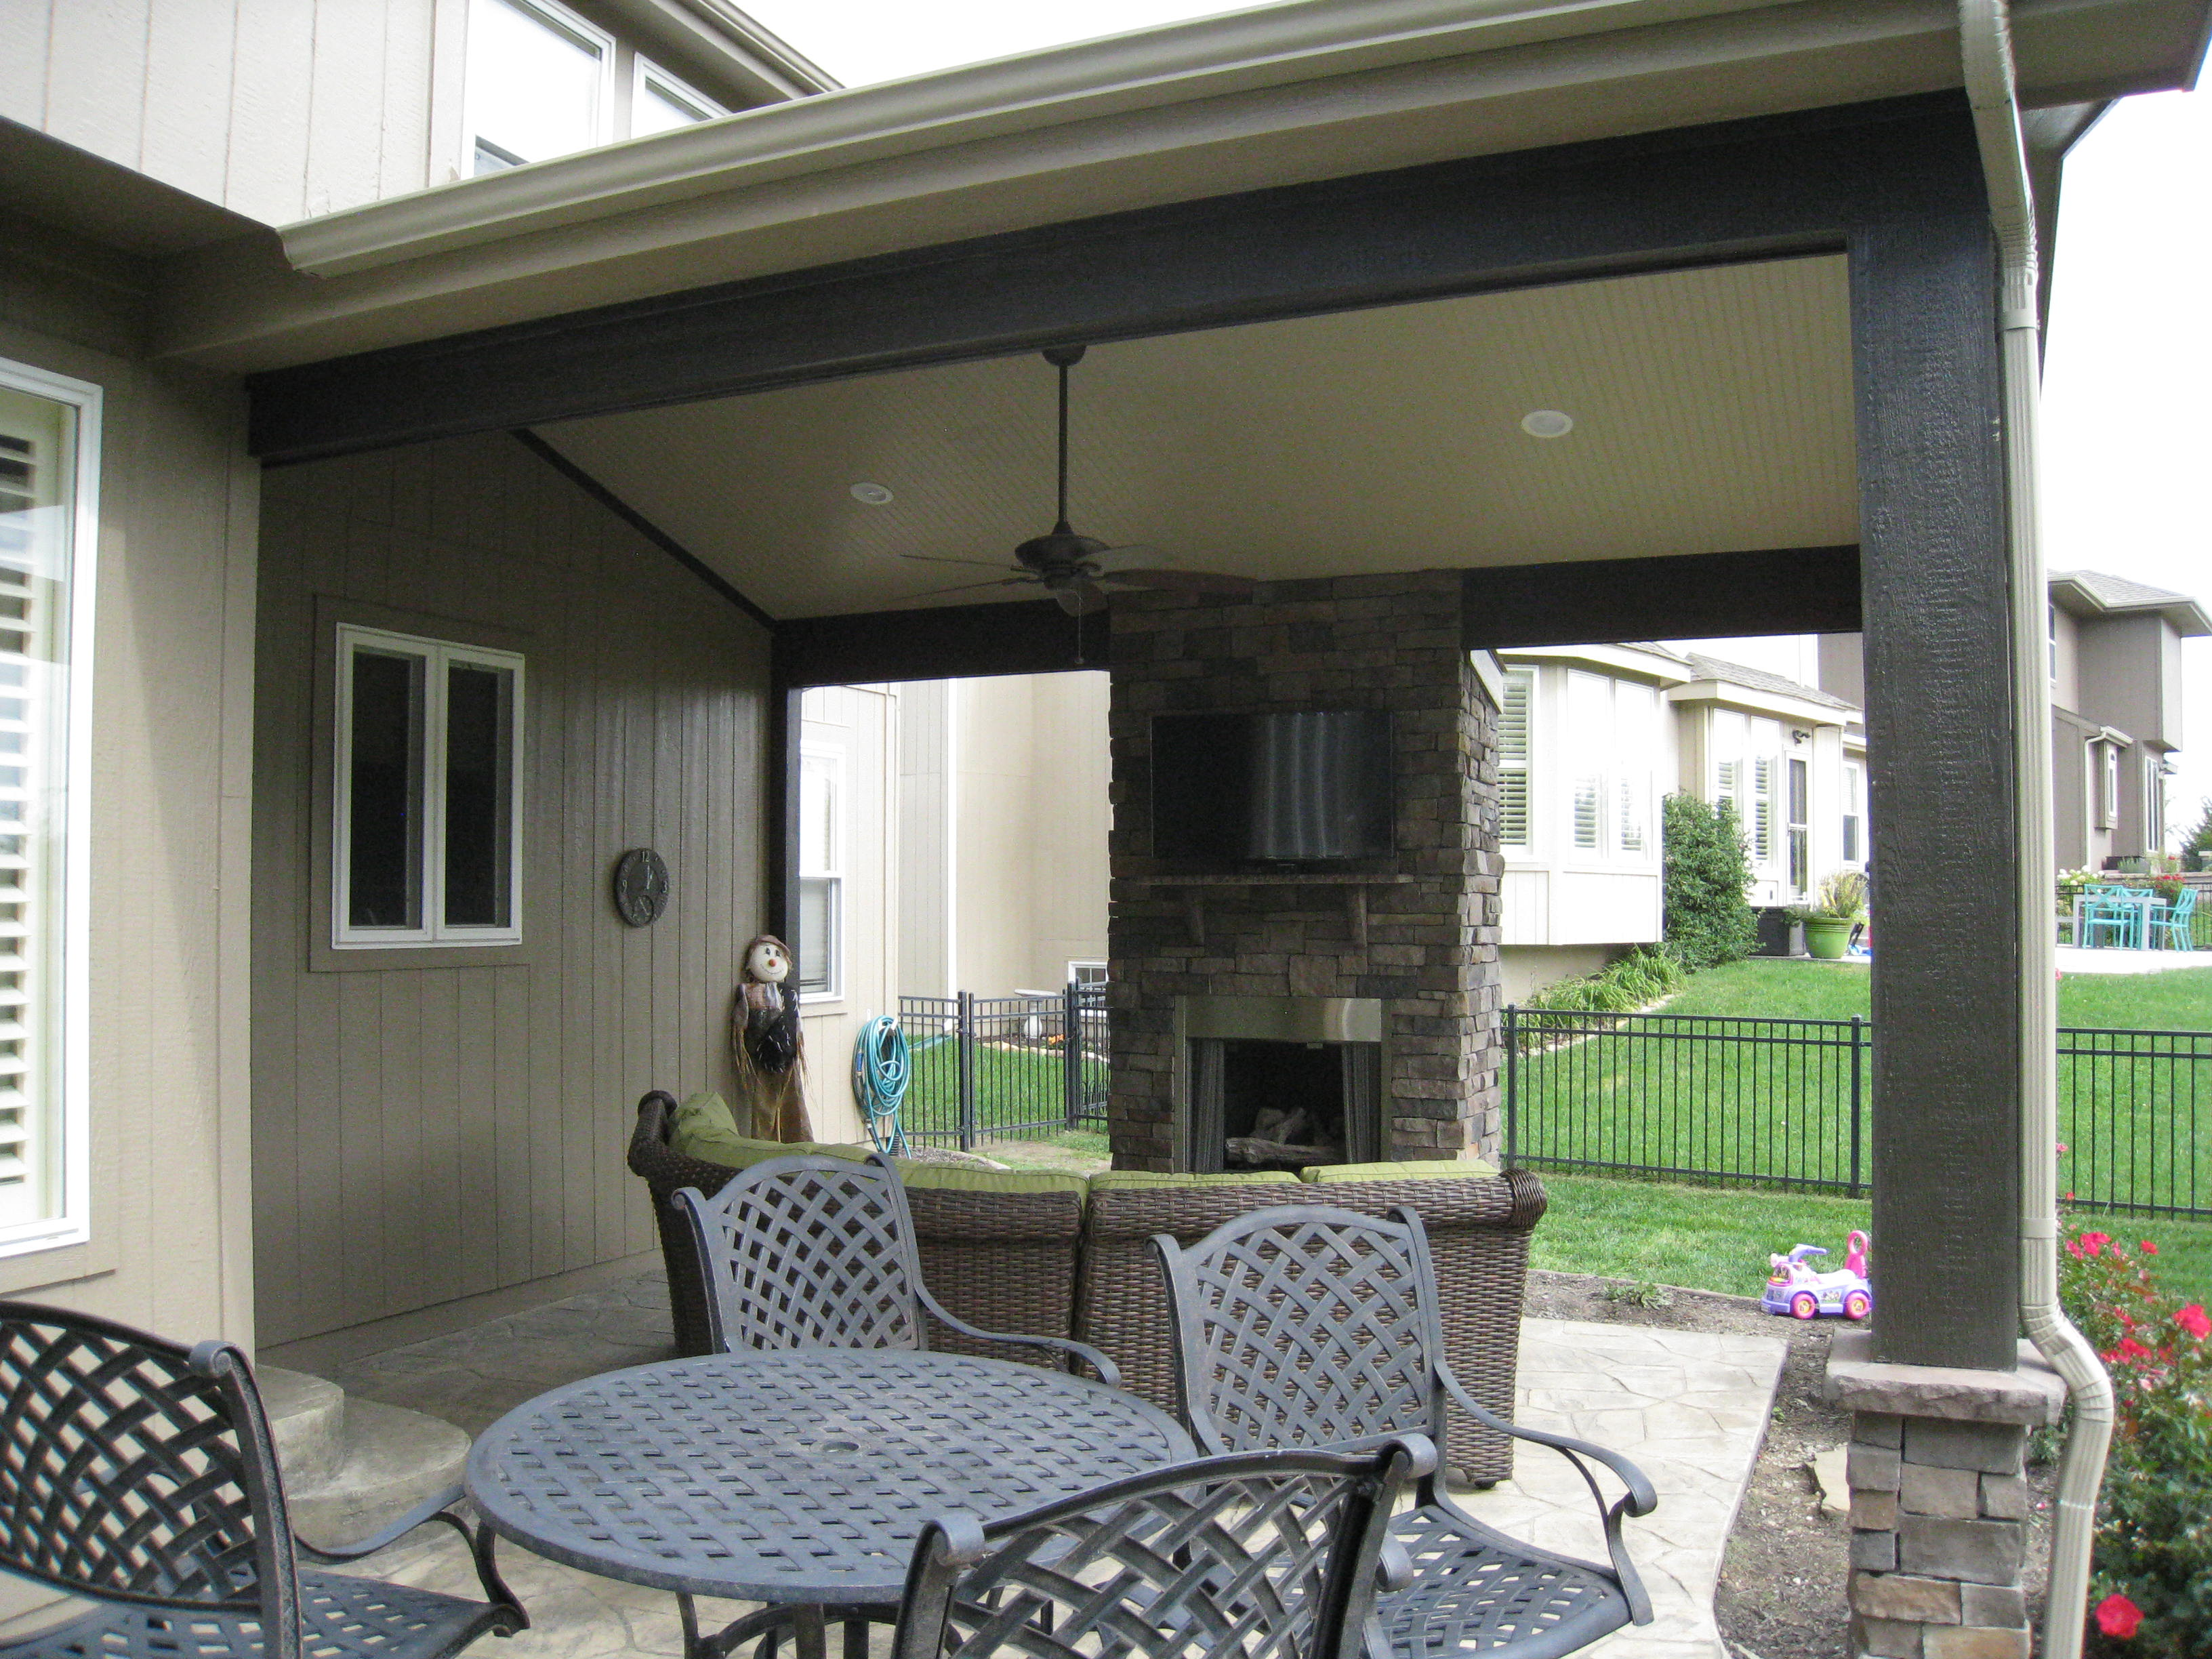 ... $5,000 U2013 $10,000 Or Higher In Addition To The Deck/porch/patio Cost.  Some Other Options That Will Determine Your Cost Include The Facade You  Choose.